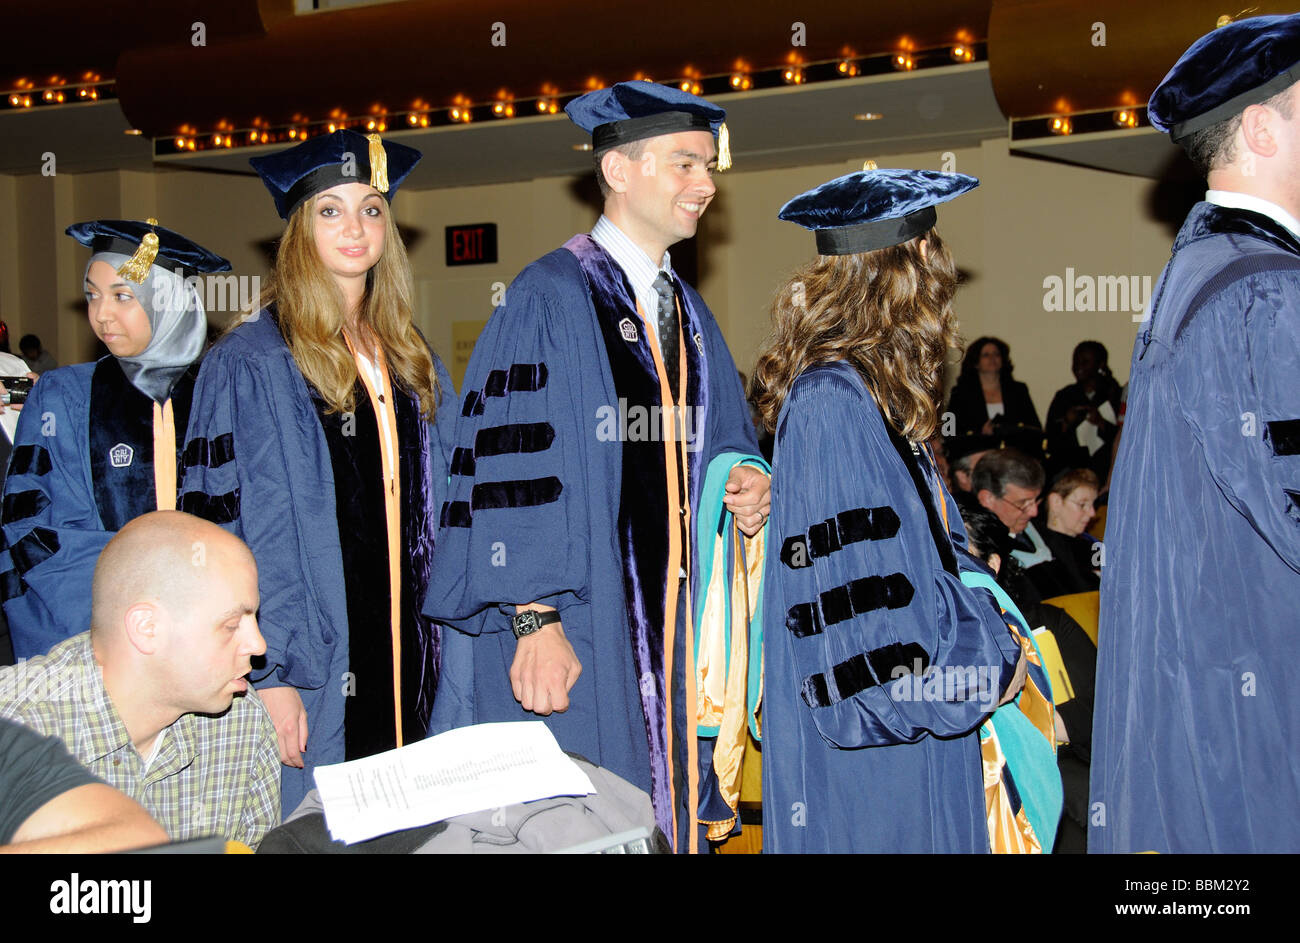 Graduation ceremony doctoral graduates wearing cap and gown in line ...